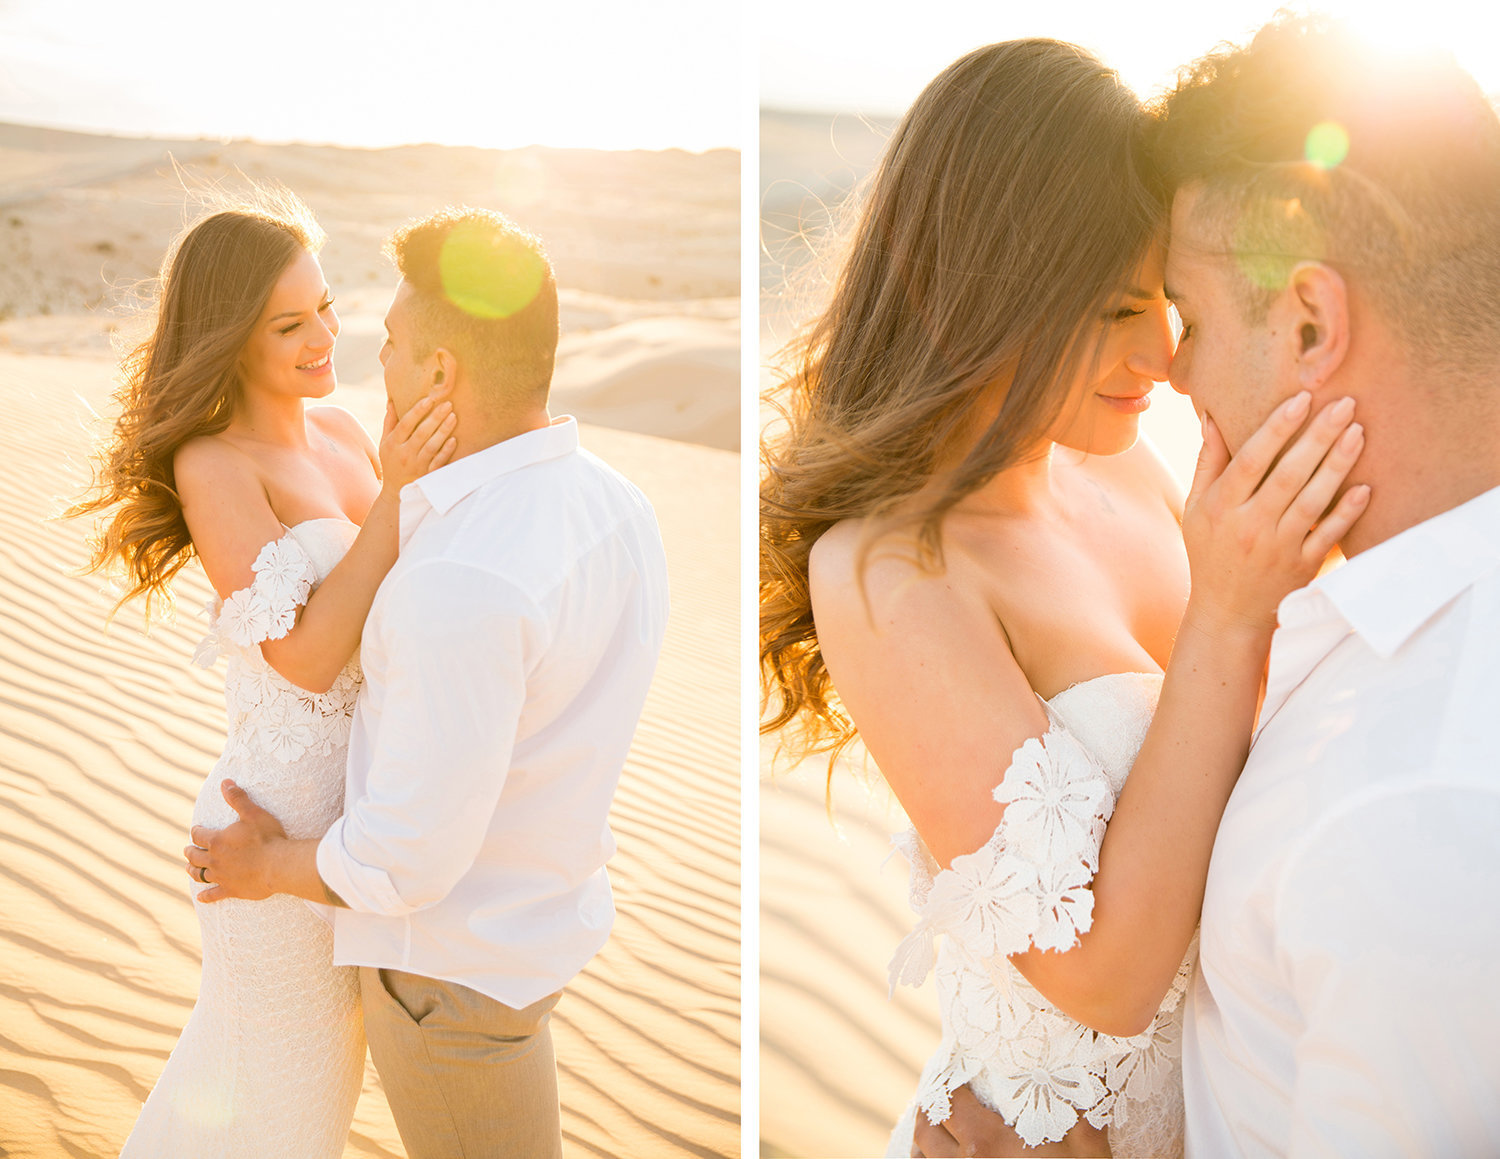 Bride and Groom Embracing During Sunset at Glamis Sand Dunes